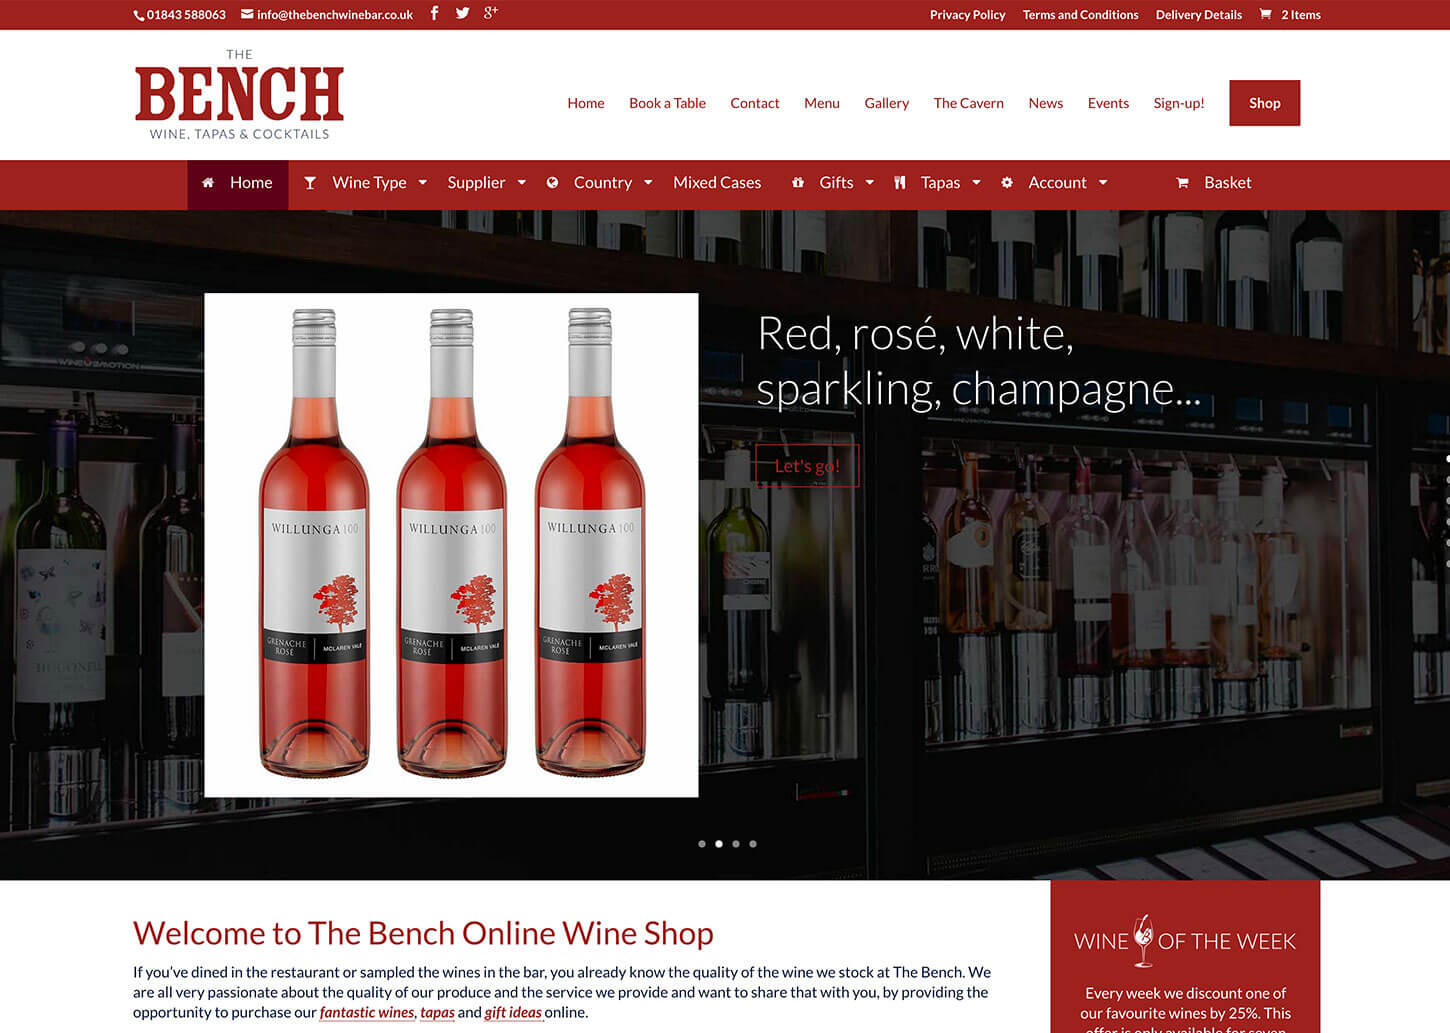 The Bench Restaurant website design - Web shop